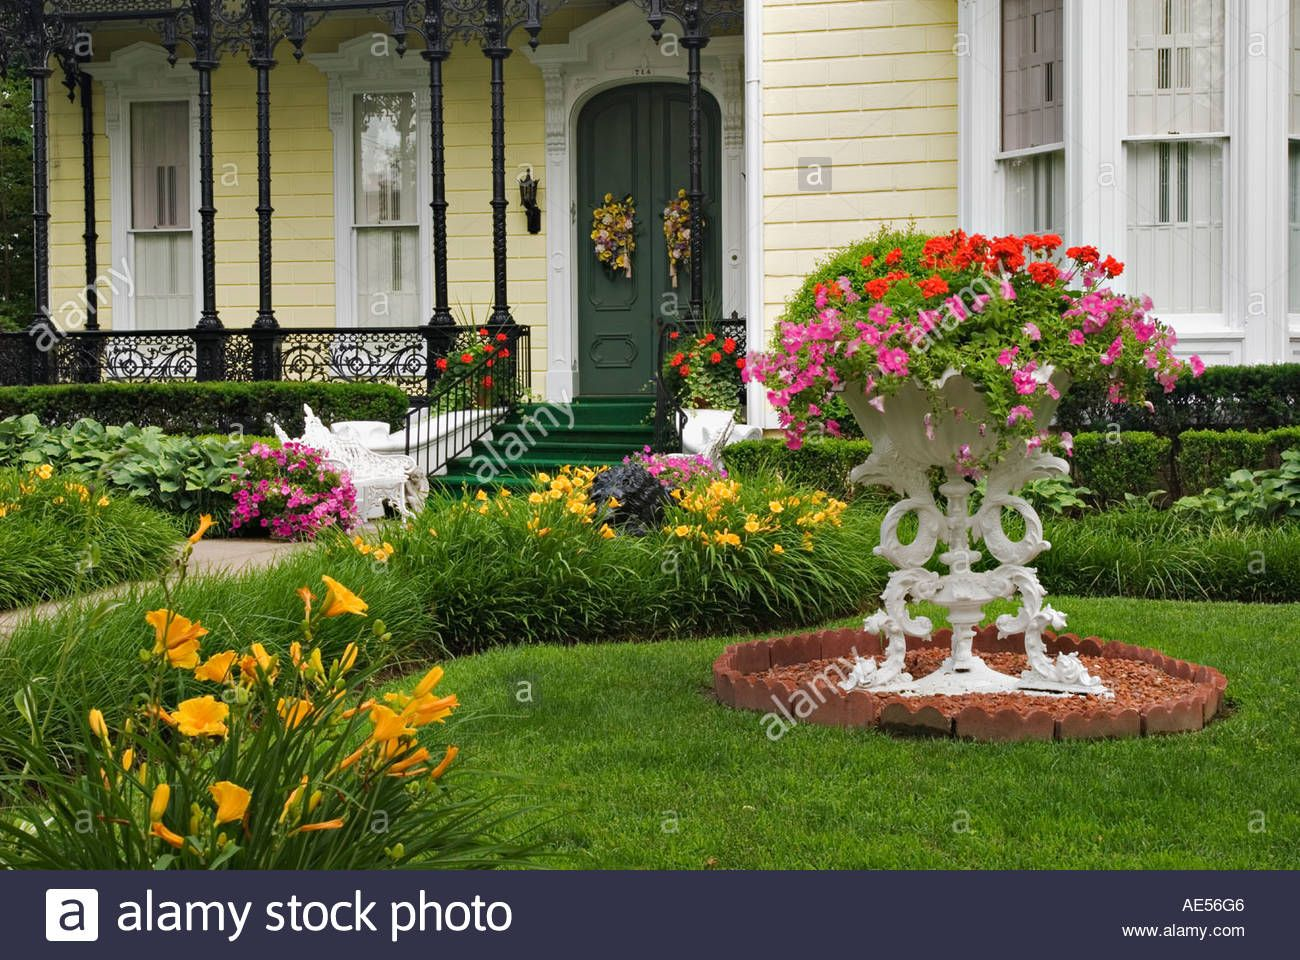 albany lawn and garden